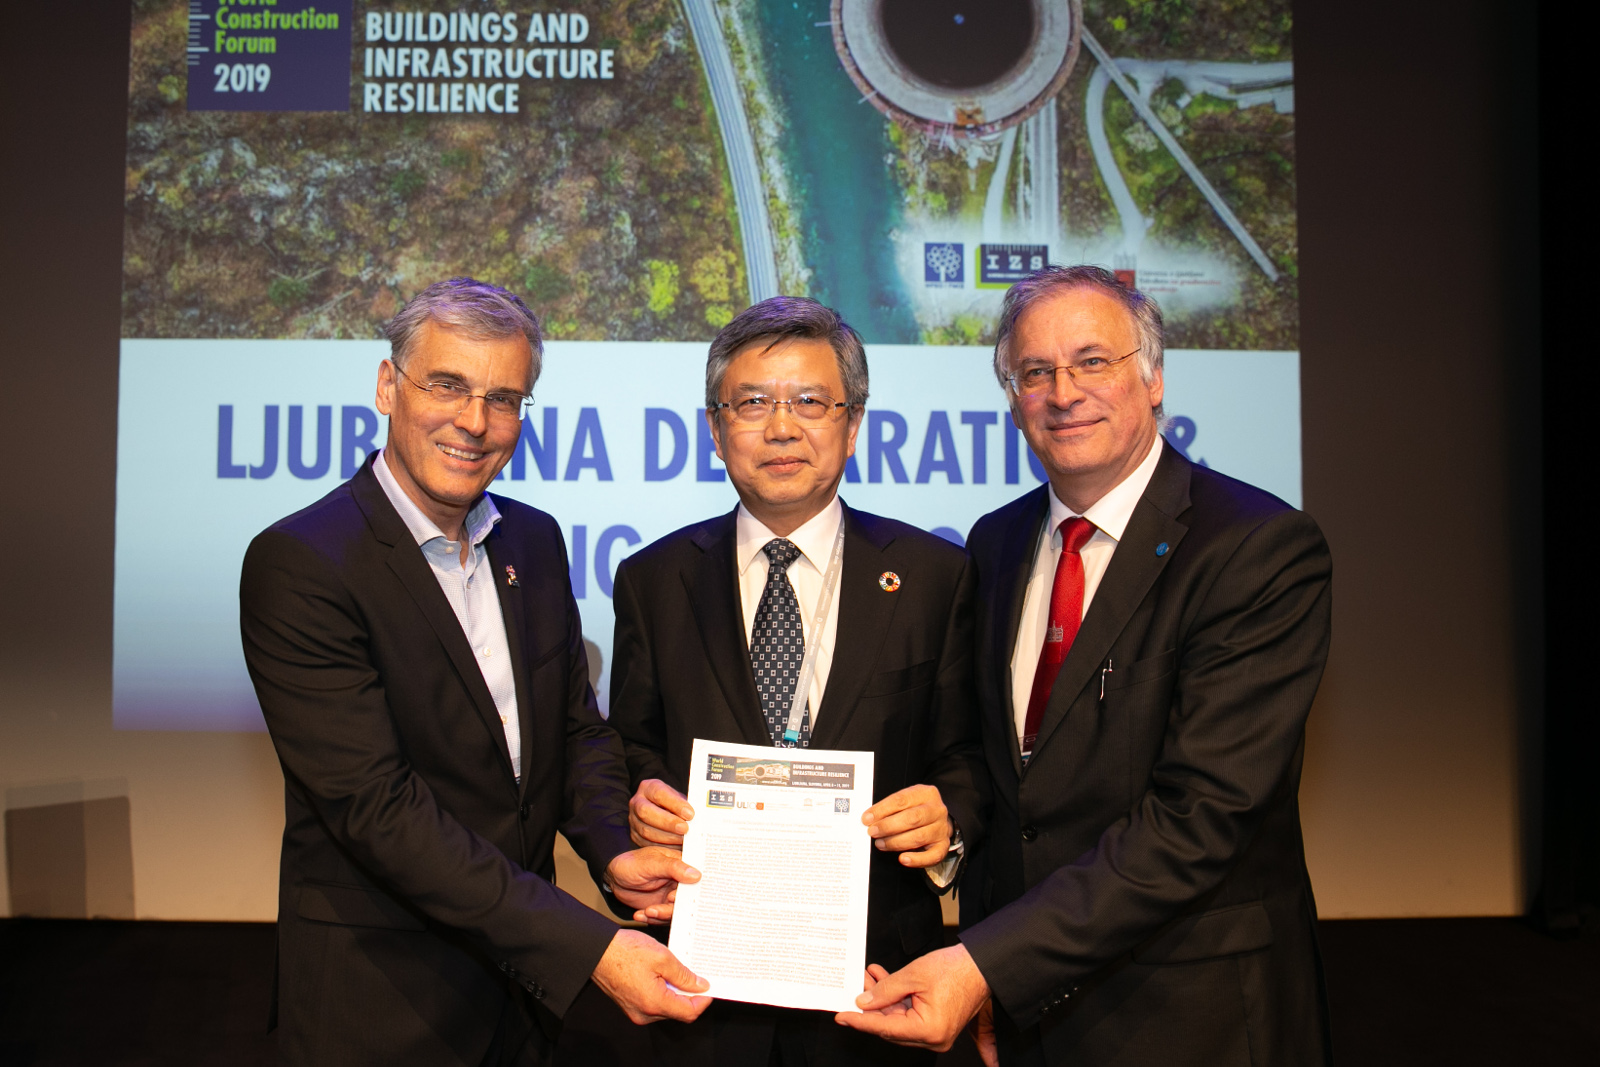 Mag. Črtomir Remec, president of the Slovenian Chamber of Engineers, WFEO President-Elect Prof. Gong Ke and Prof. Matjaž Mikoš, Dean of the Faculty of Civil and Geodetic Engineering of University of Ljubljana, showing the 2019 Ljubljana declaration